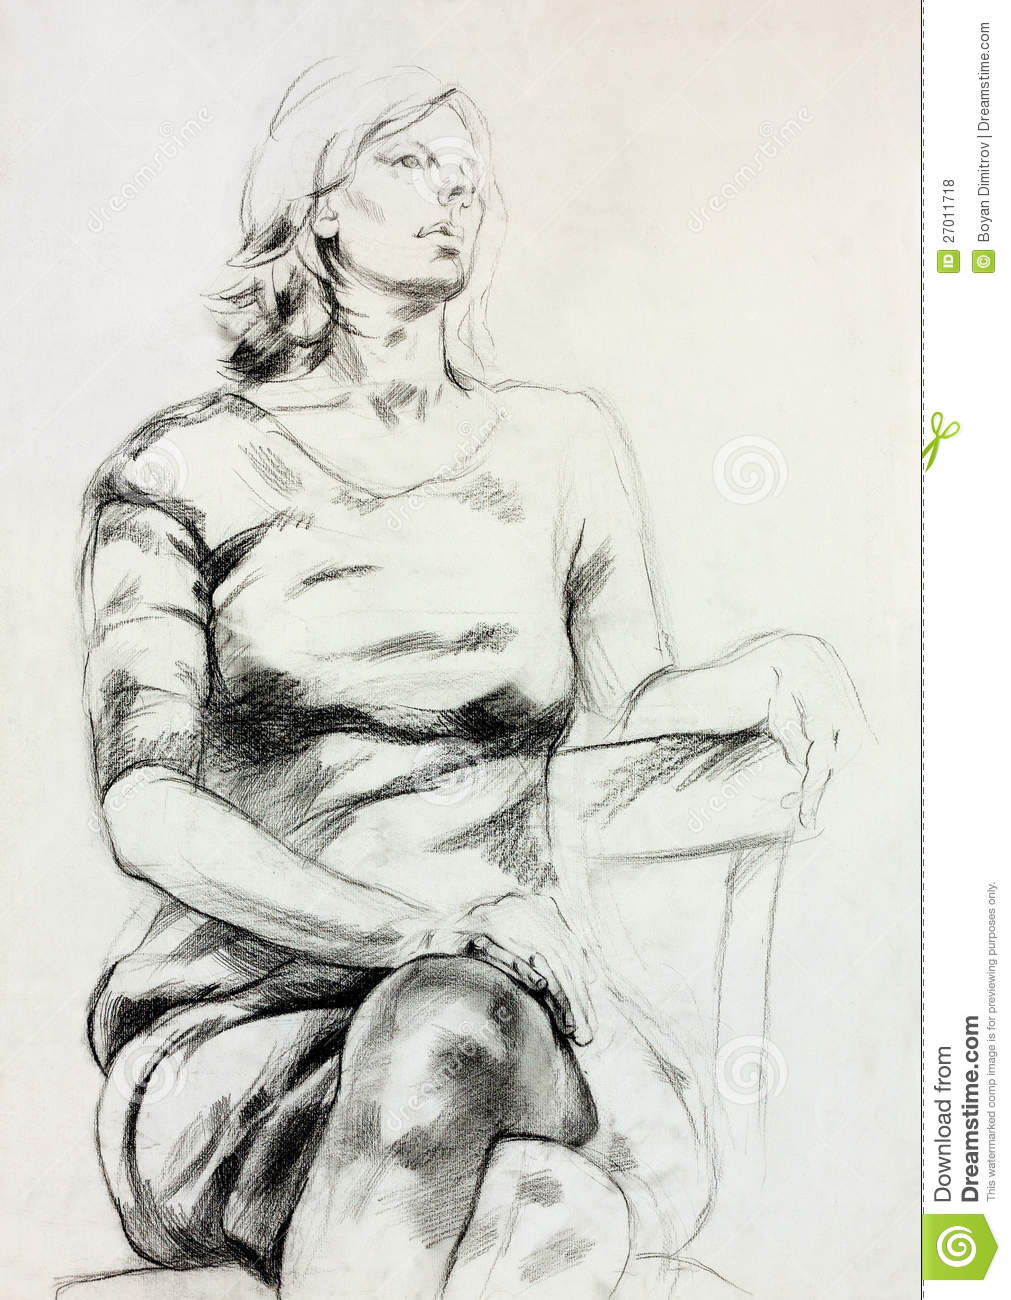 Woman sitting sketch